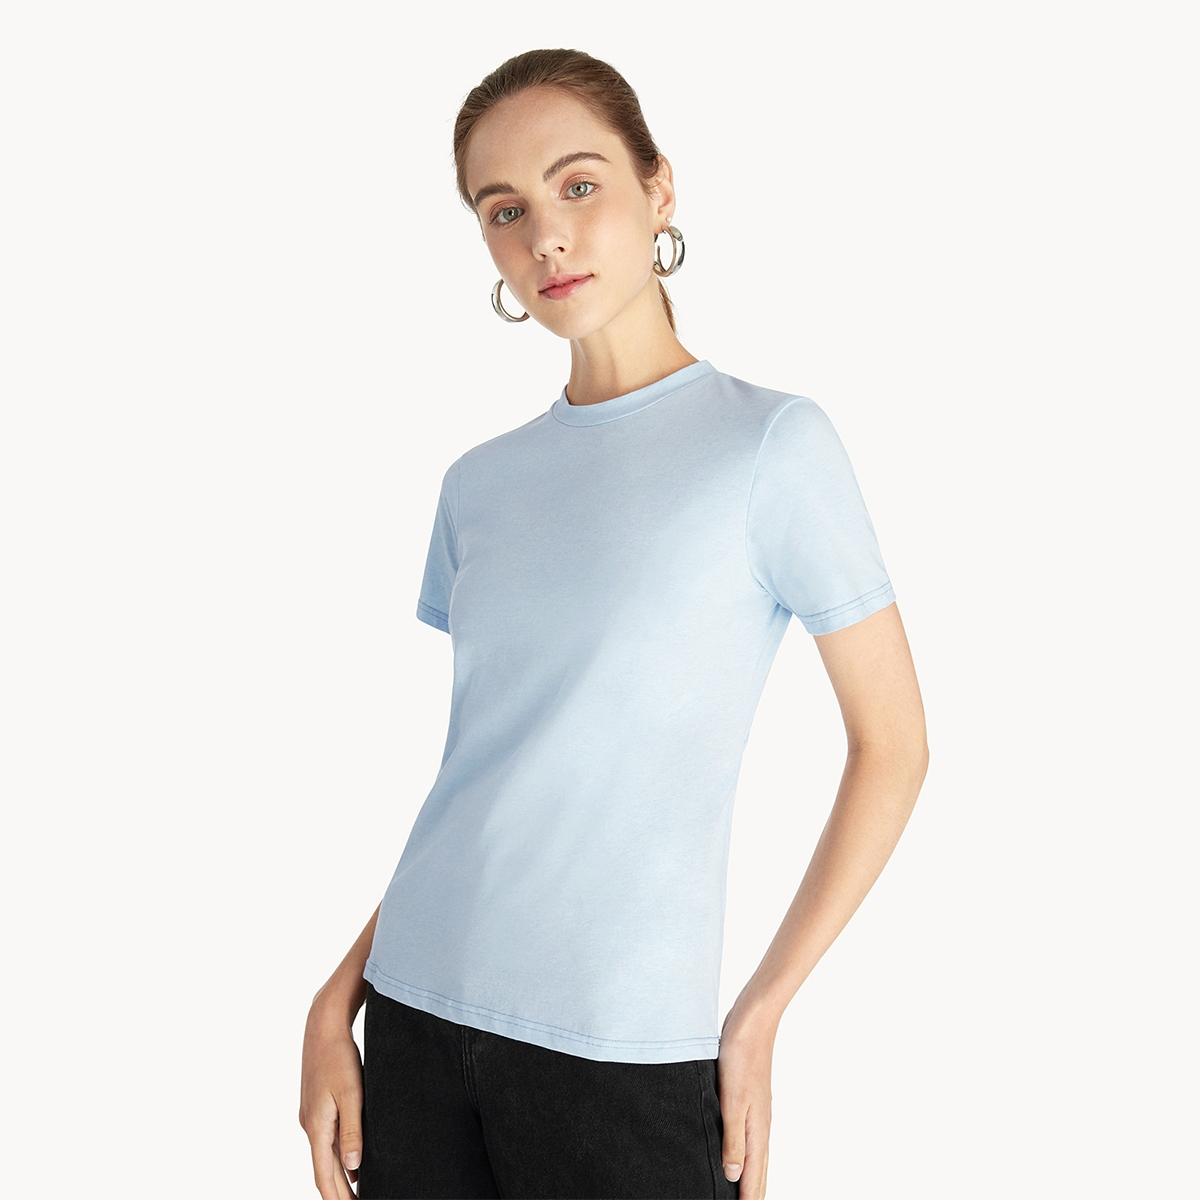 Open Cut Out Knotted Tee Blue